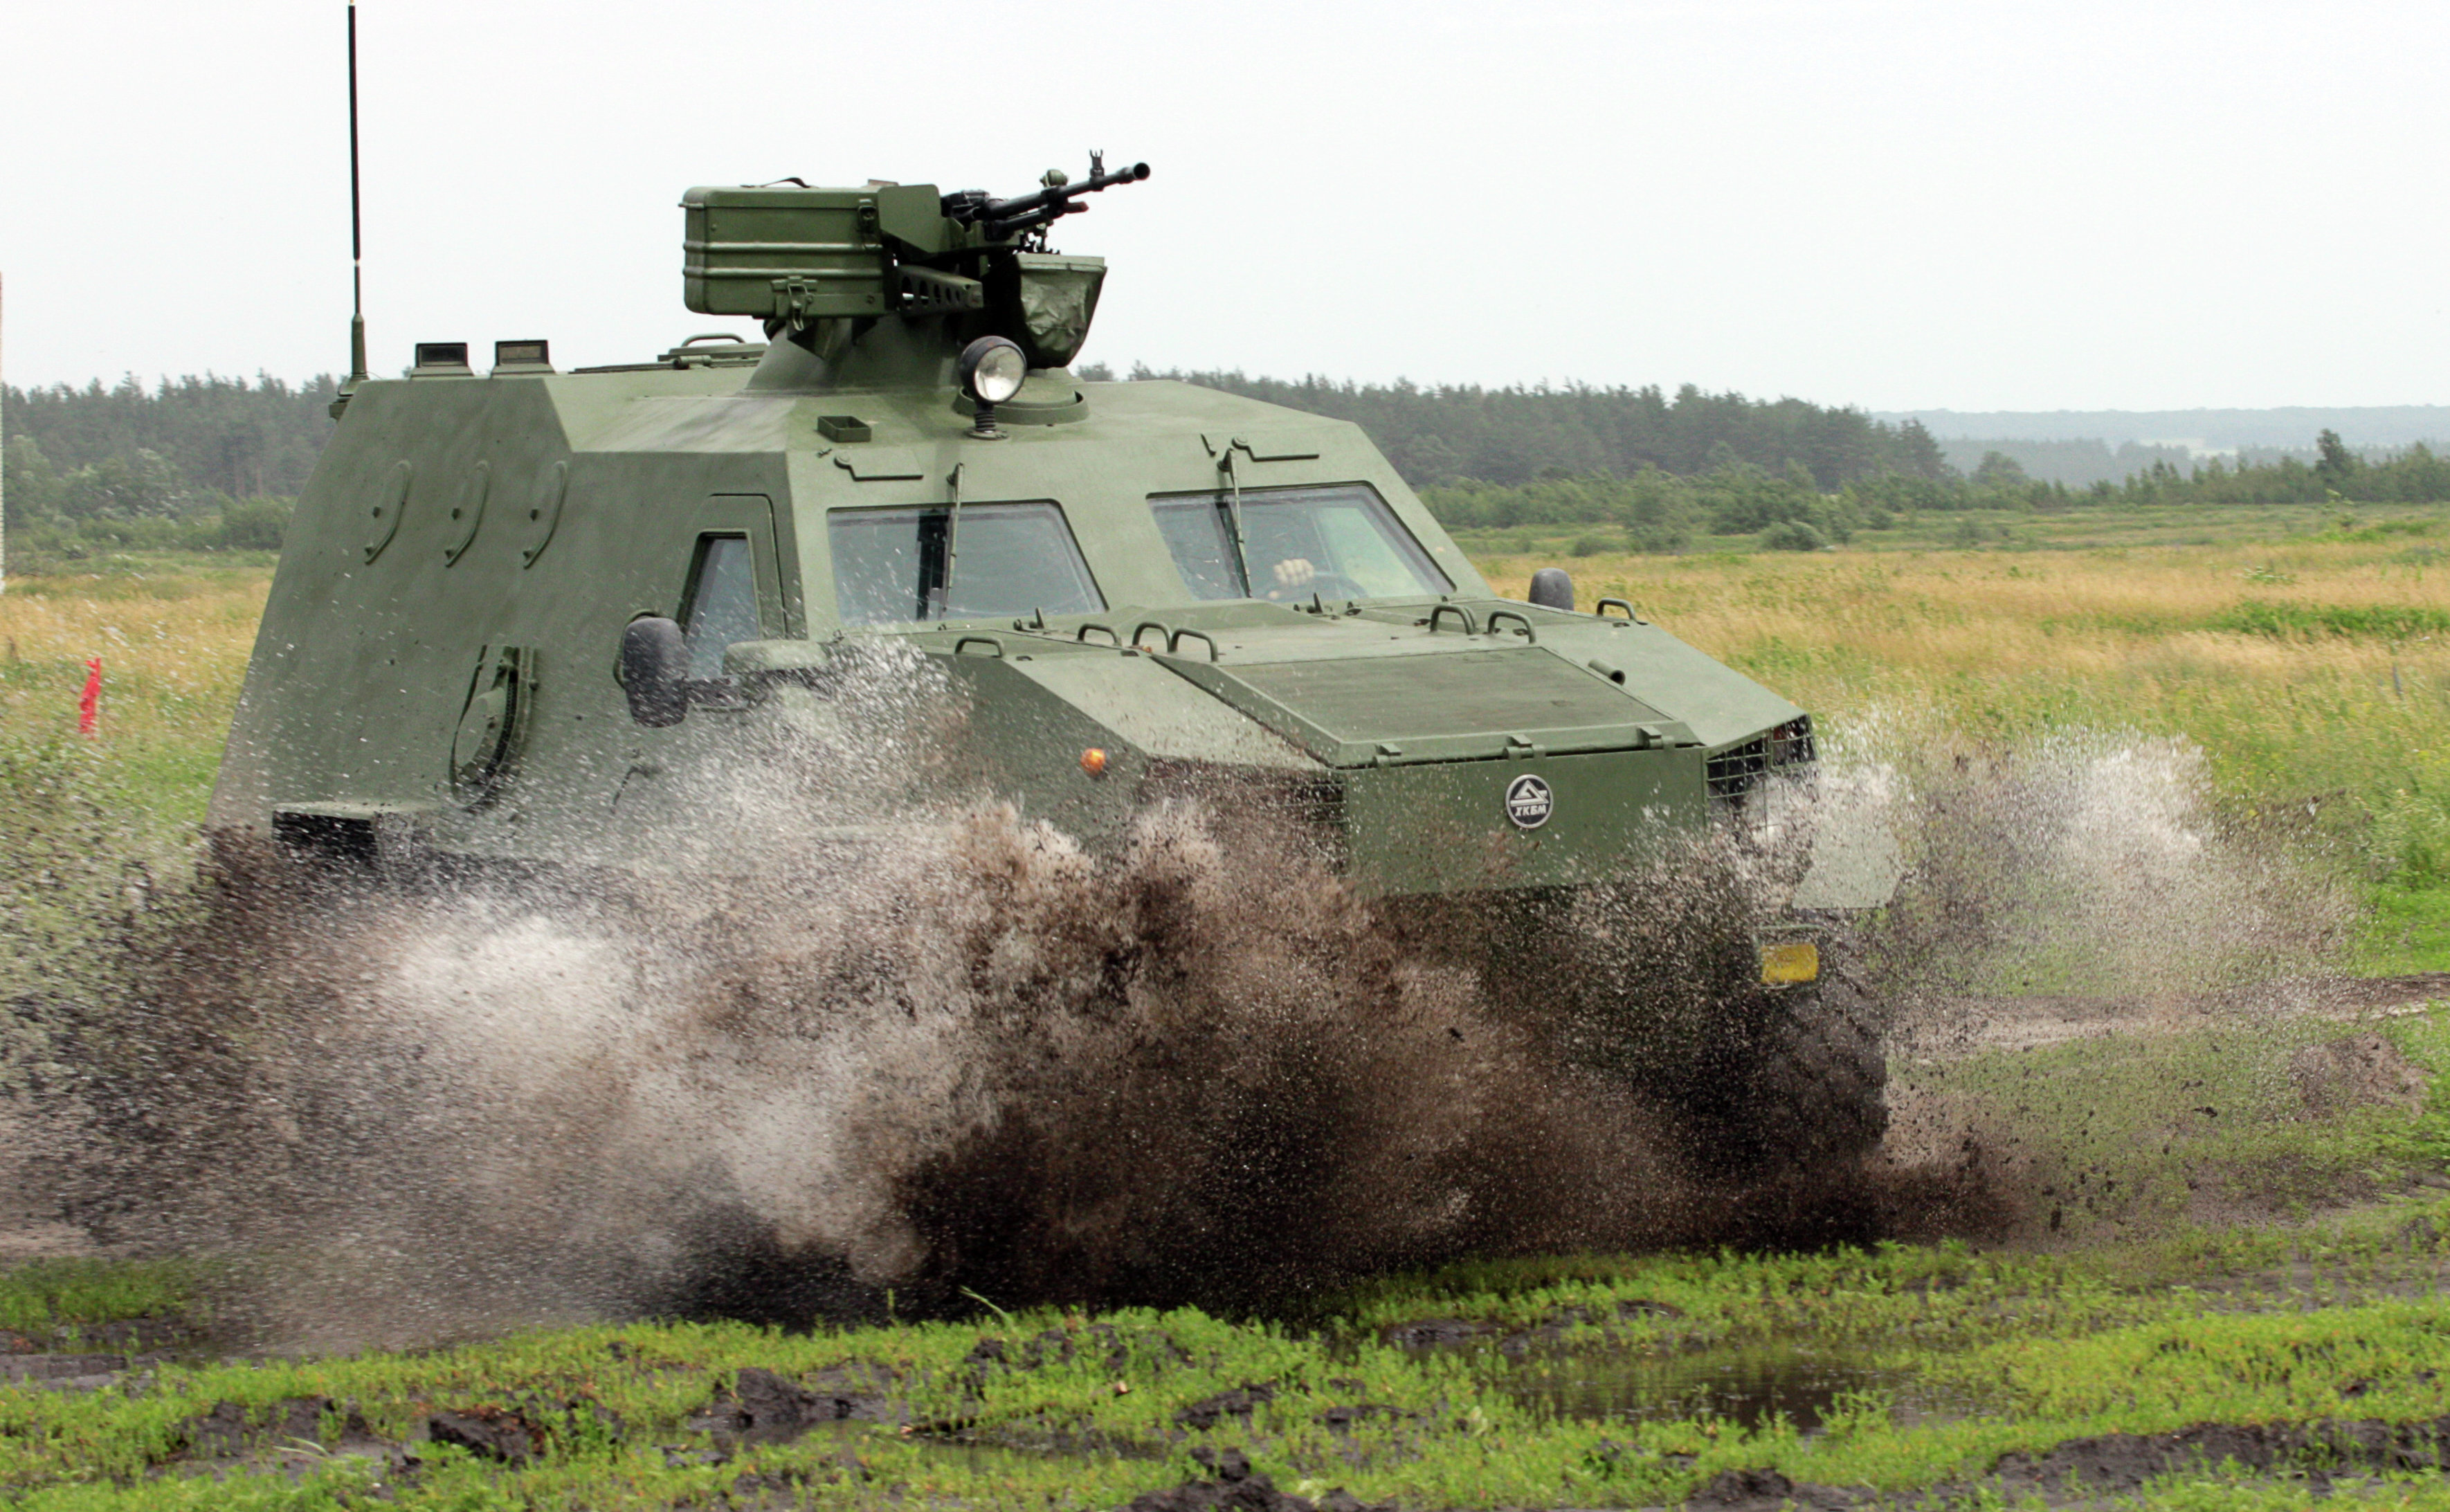 The Dozor-B, a new Ukrainian-made armored personnel carrier, undergoes testing at a training ground in Chuguyev, Kharkiv region.